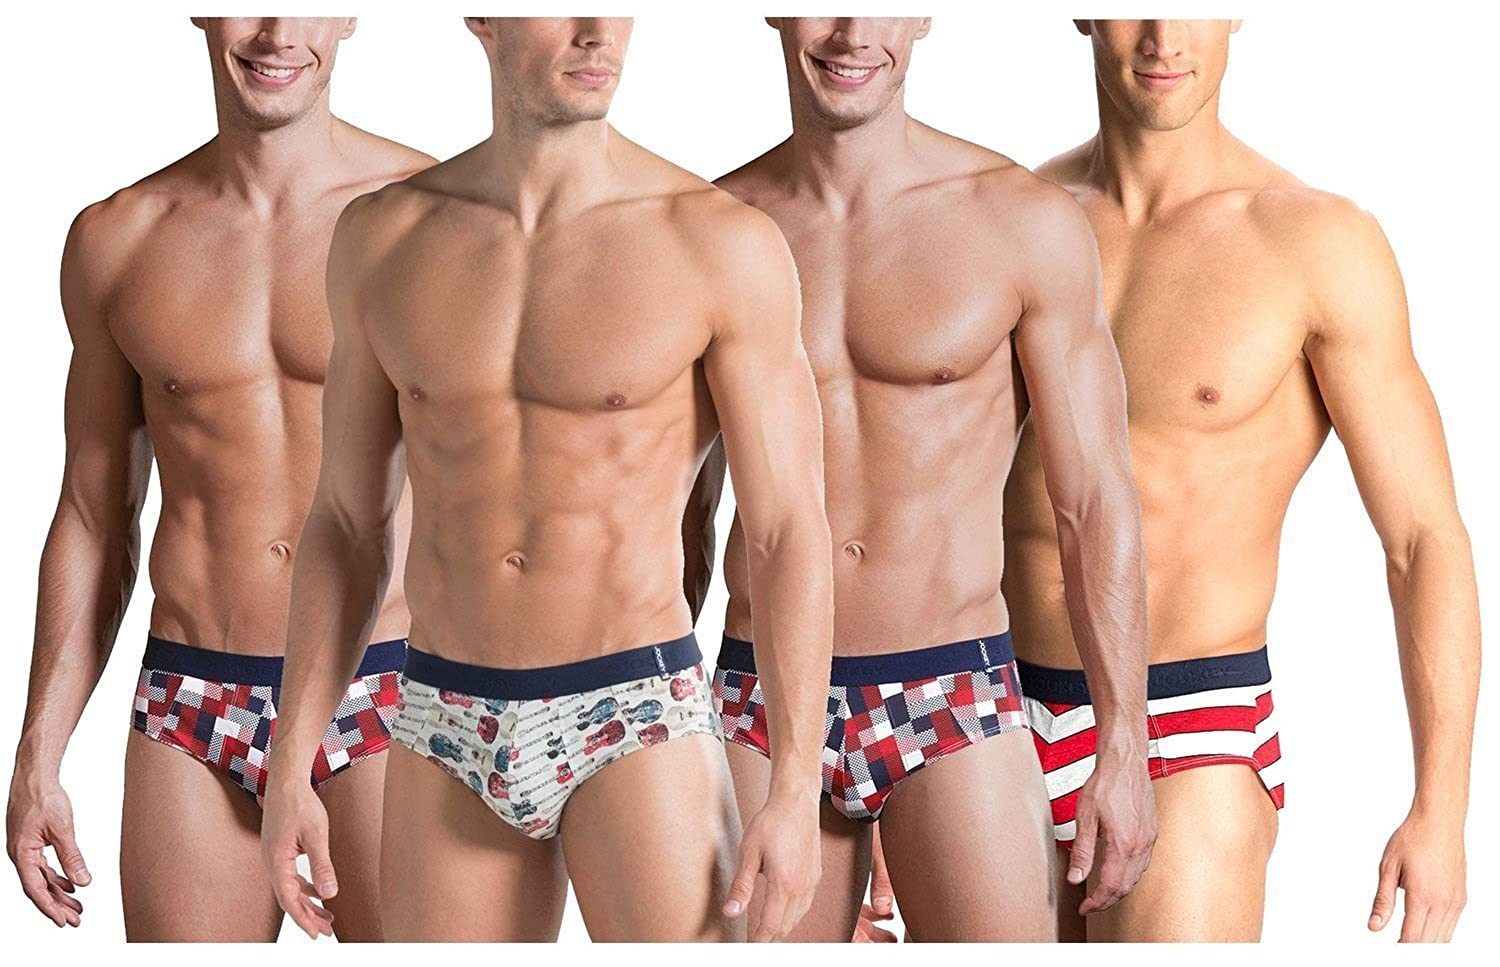 Jockey Men s Briefs (Pack of 4) Assorted Large  Amazon.in  Clothing    Accessories 7222af35552